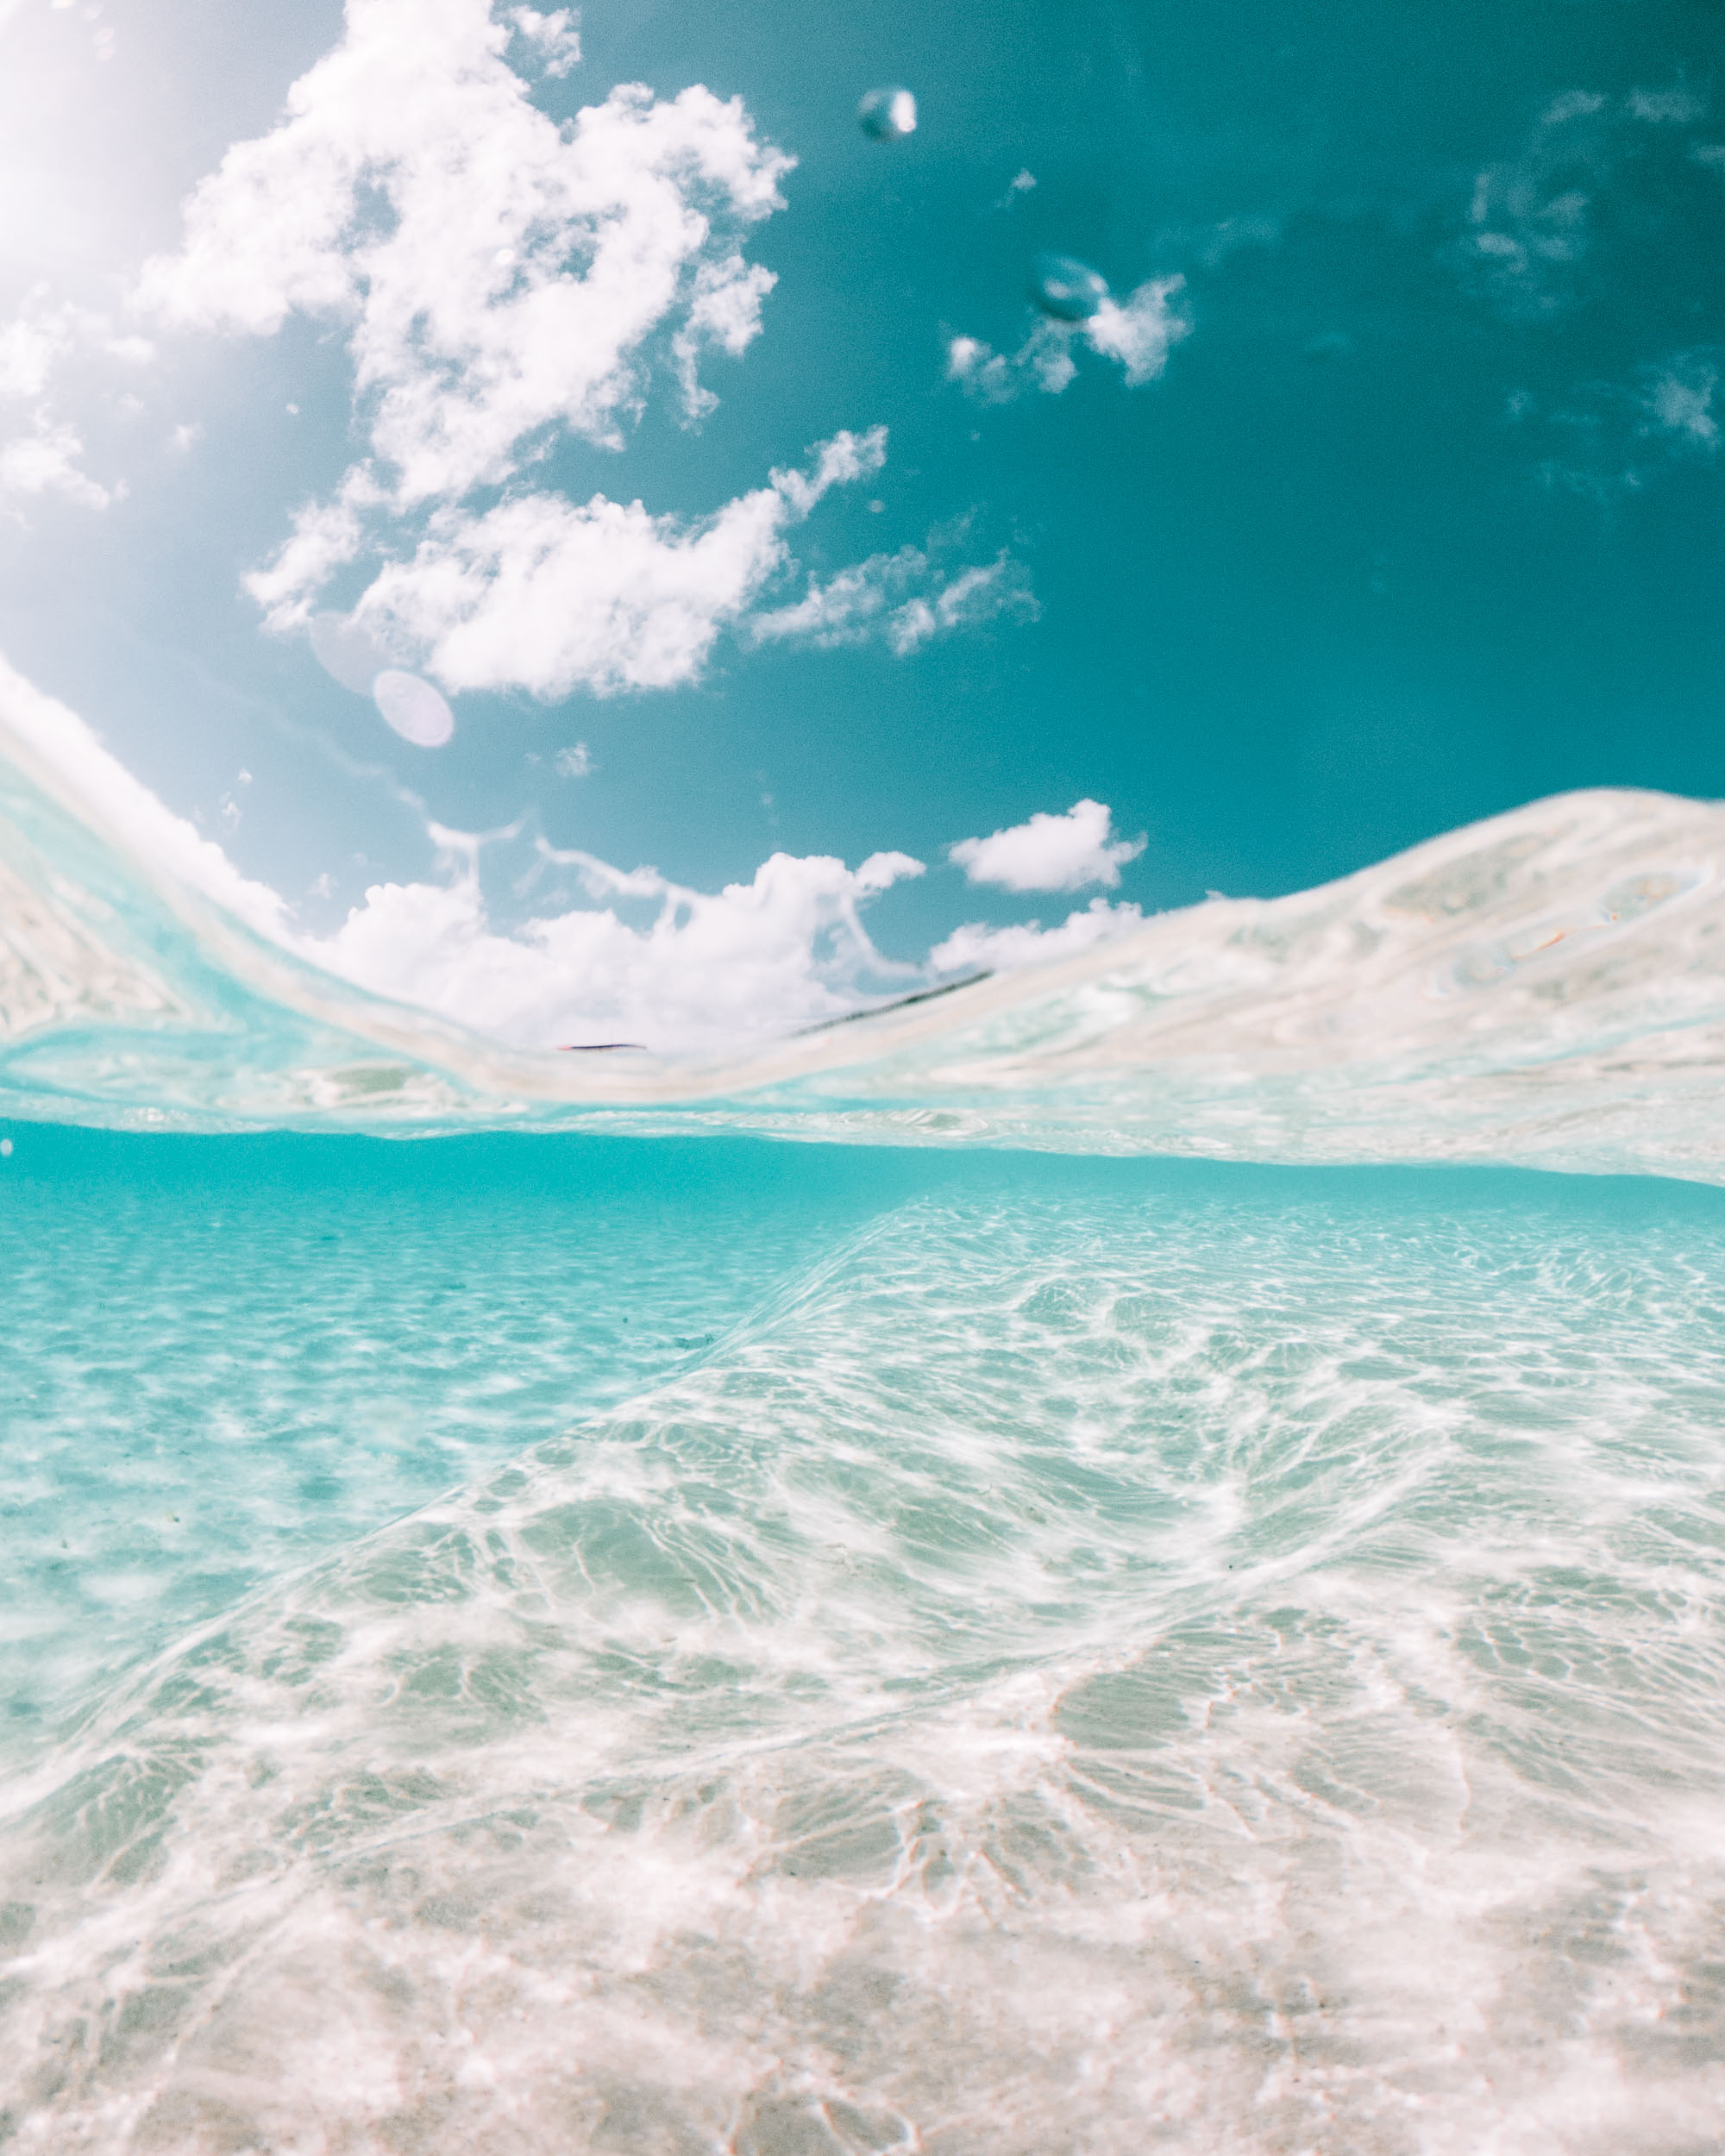 Underwater shot of clear blue turquoise water in the Cook Islands